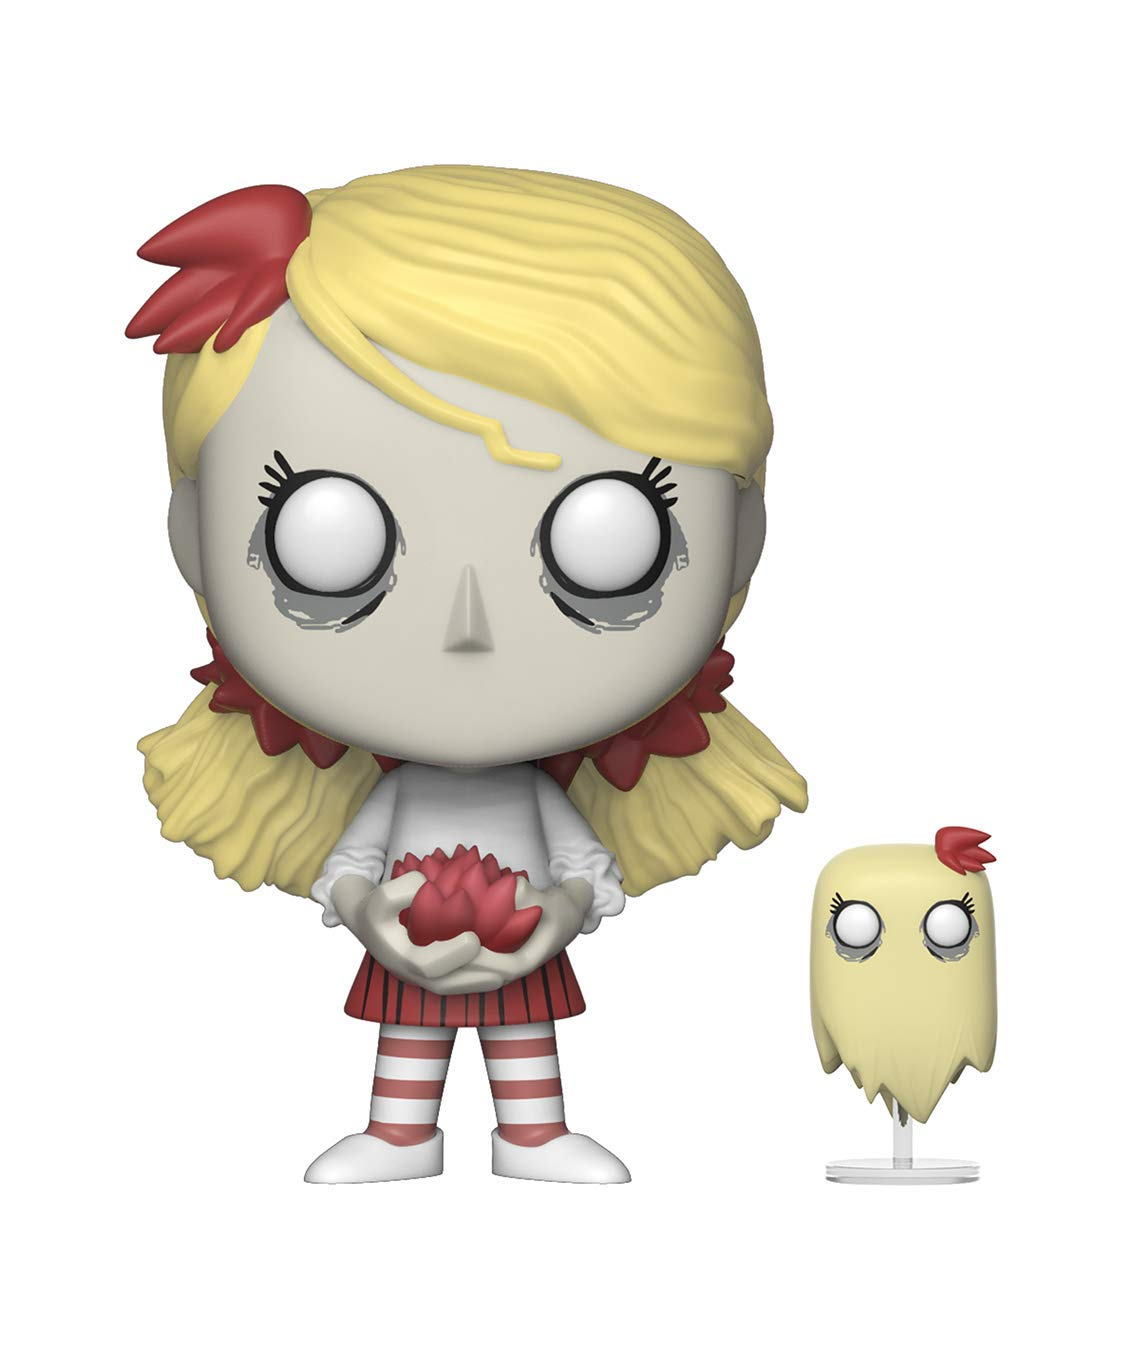 Funko Pop & Buddy 游戏:Don't Starve - Wendy with Abigail 收藏模型,多色